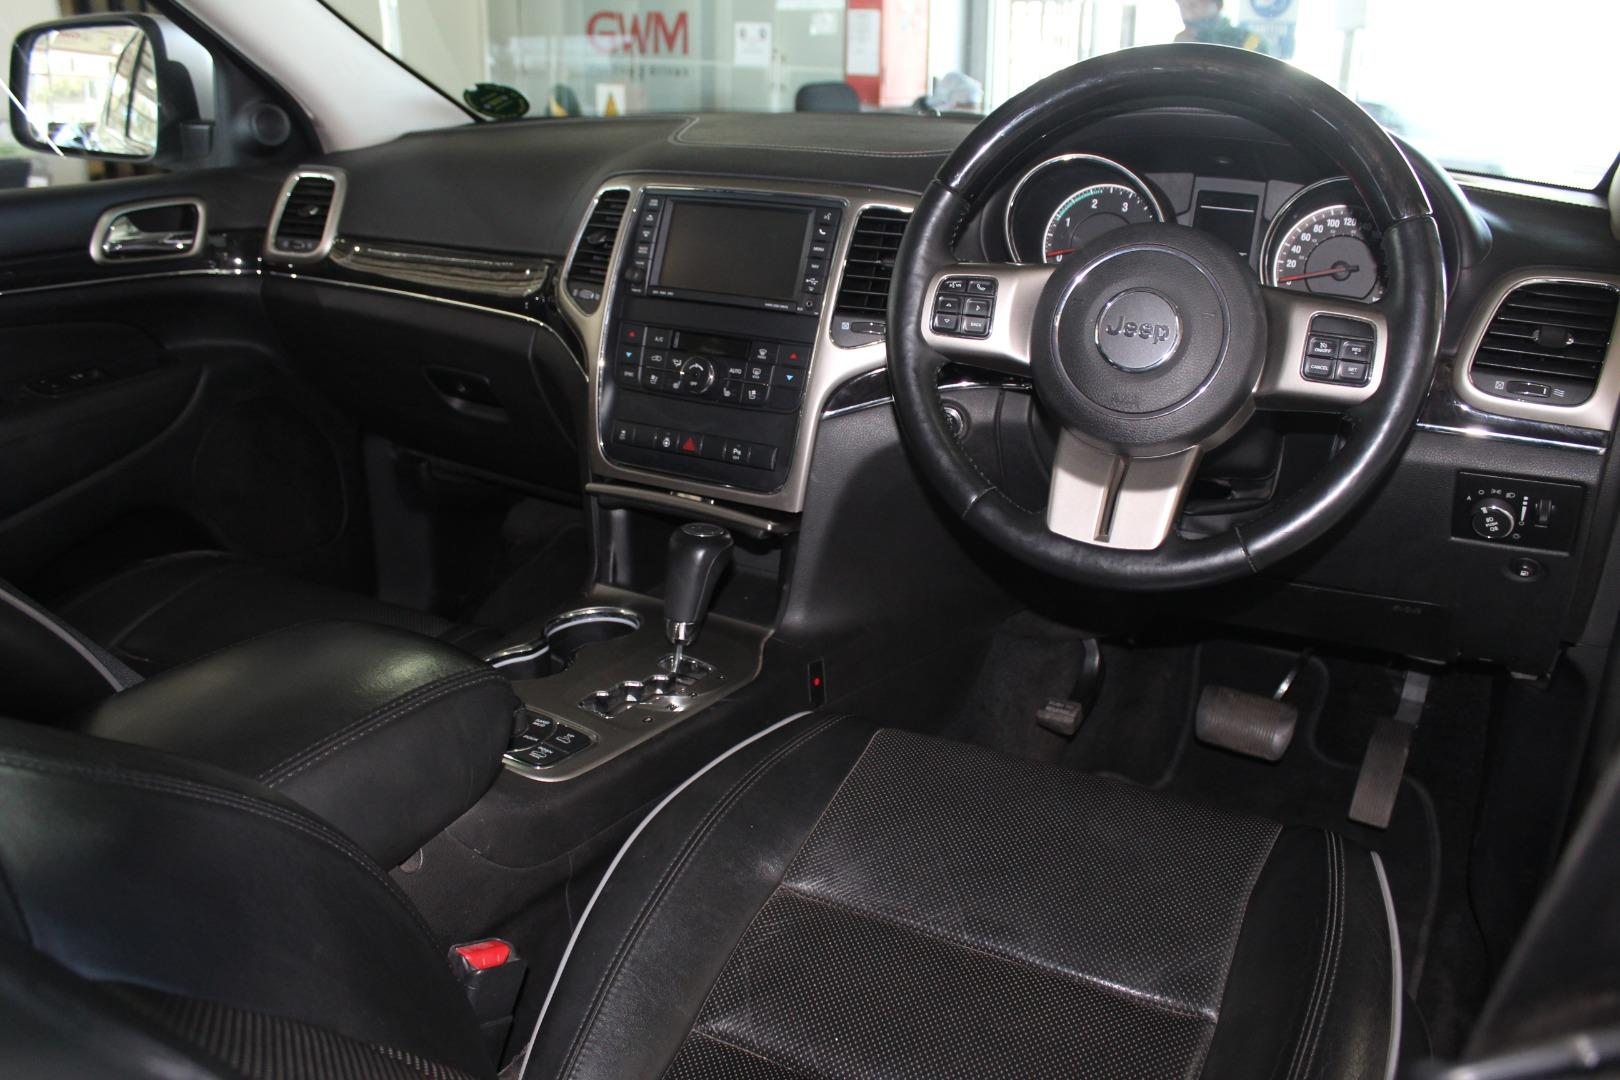 2013 Jeep Grand Cherokee 3.0CRD Overland Off-Road Adventure II- Picture 5